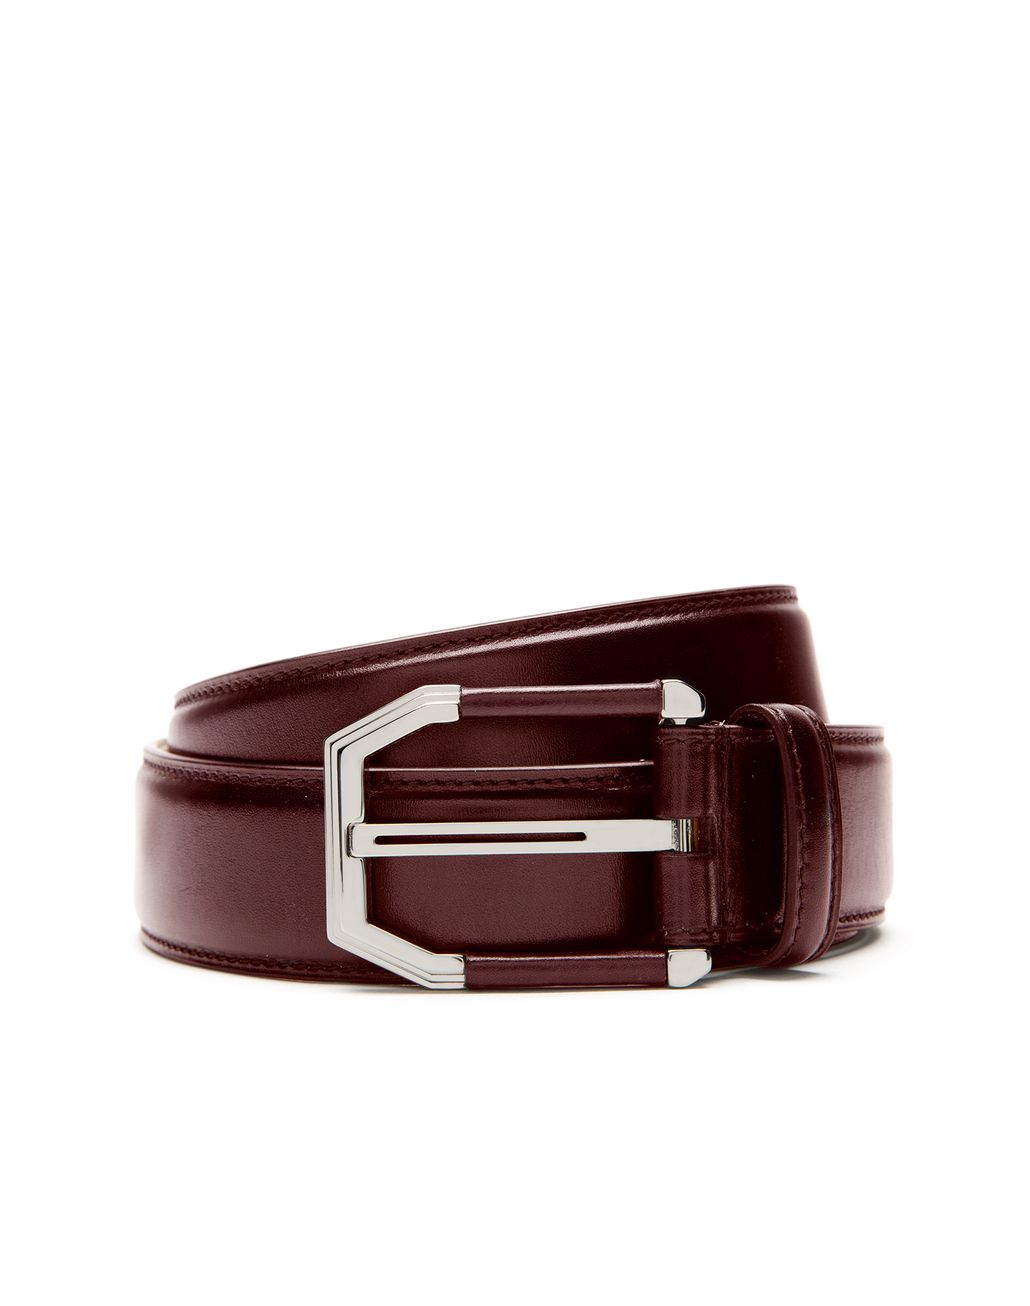 BRIONI Oxblood Belt in Calfskin Leather with Leather Details on Buckle Belt U r